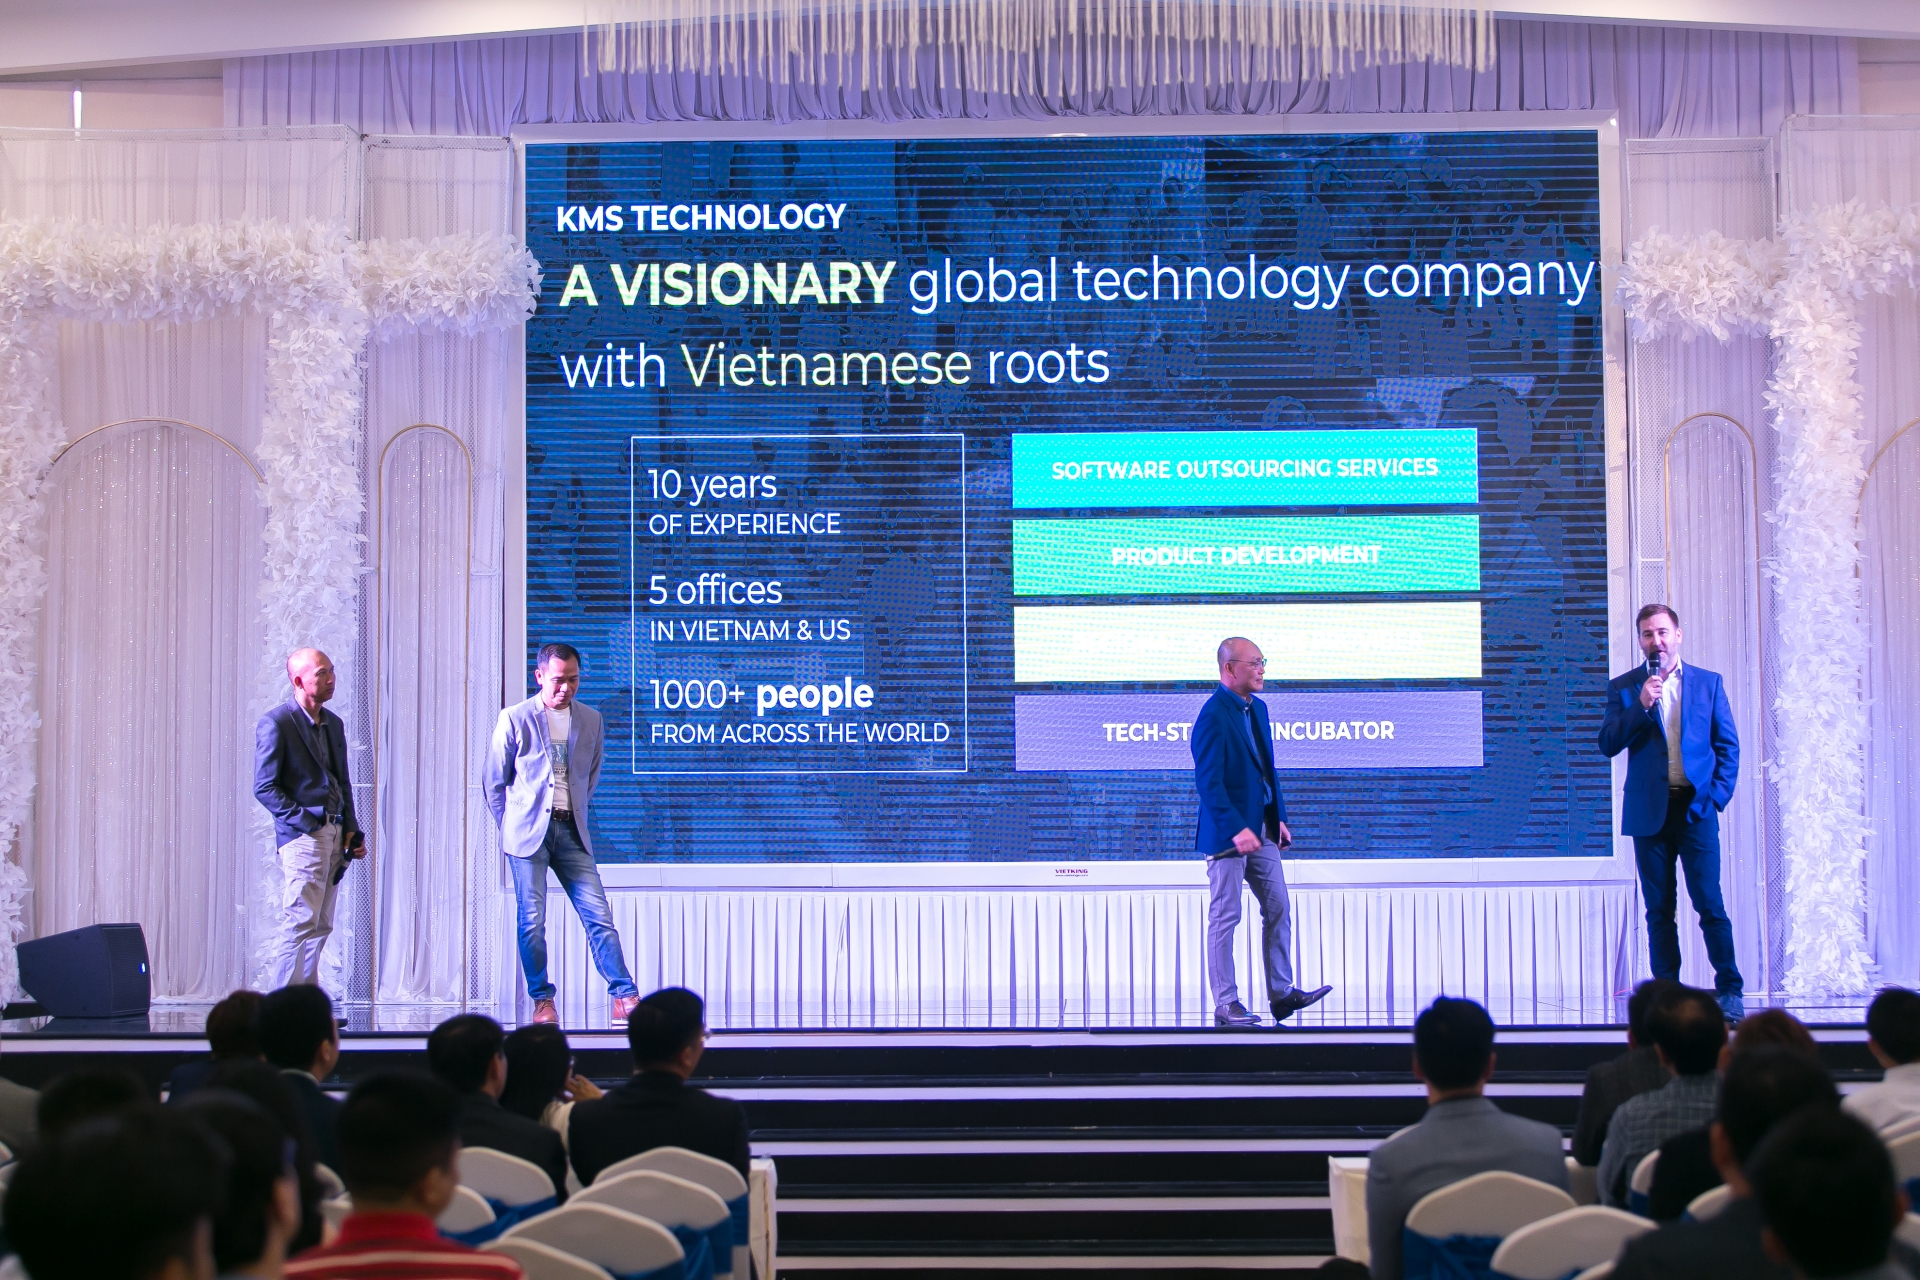 kms technology expands reach to asia with vietnam in focus